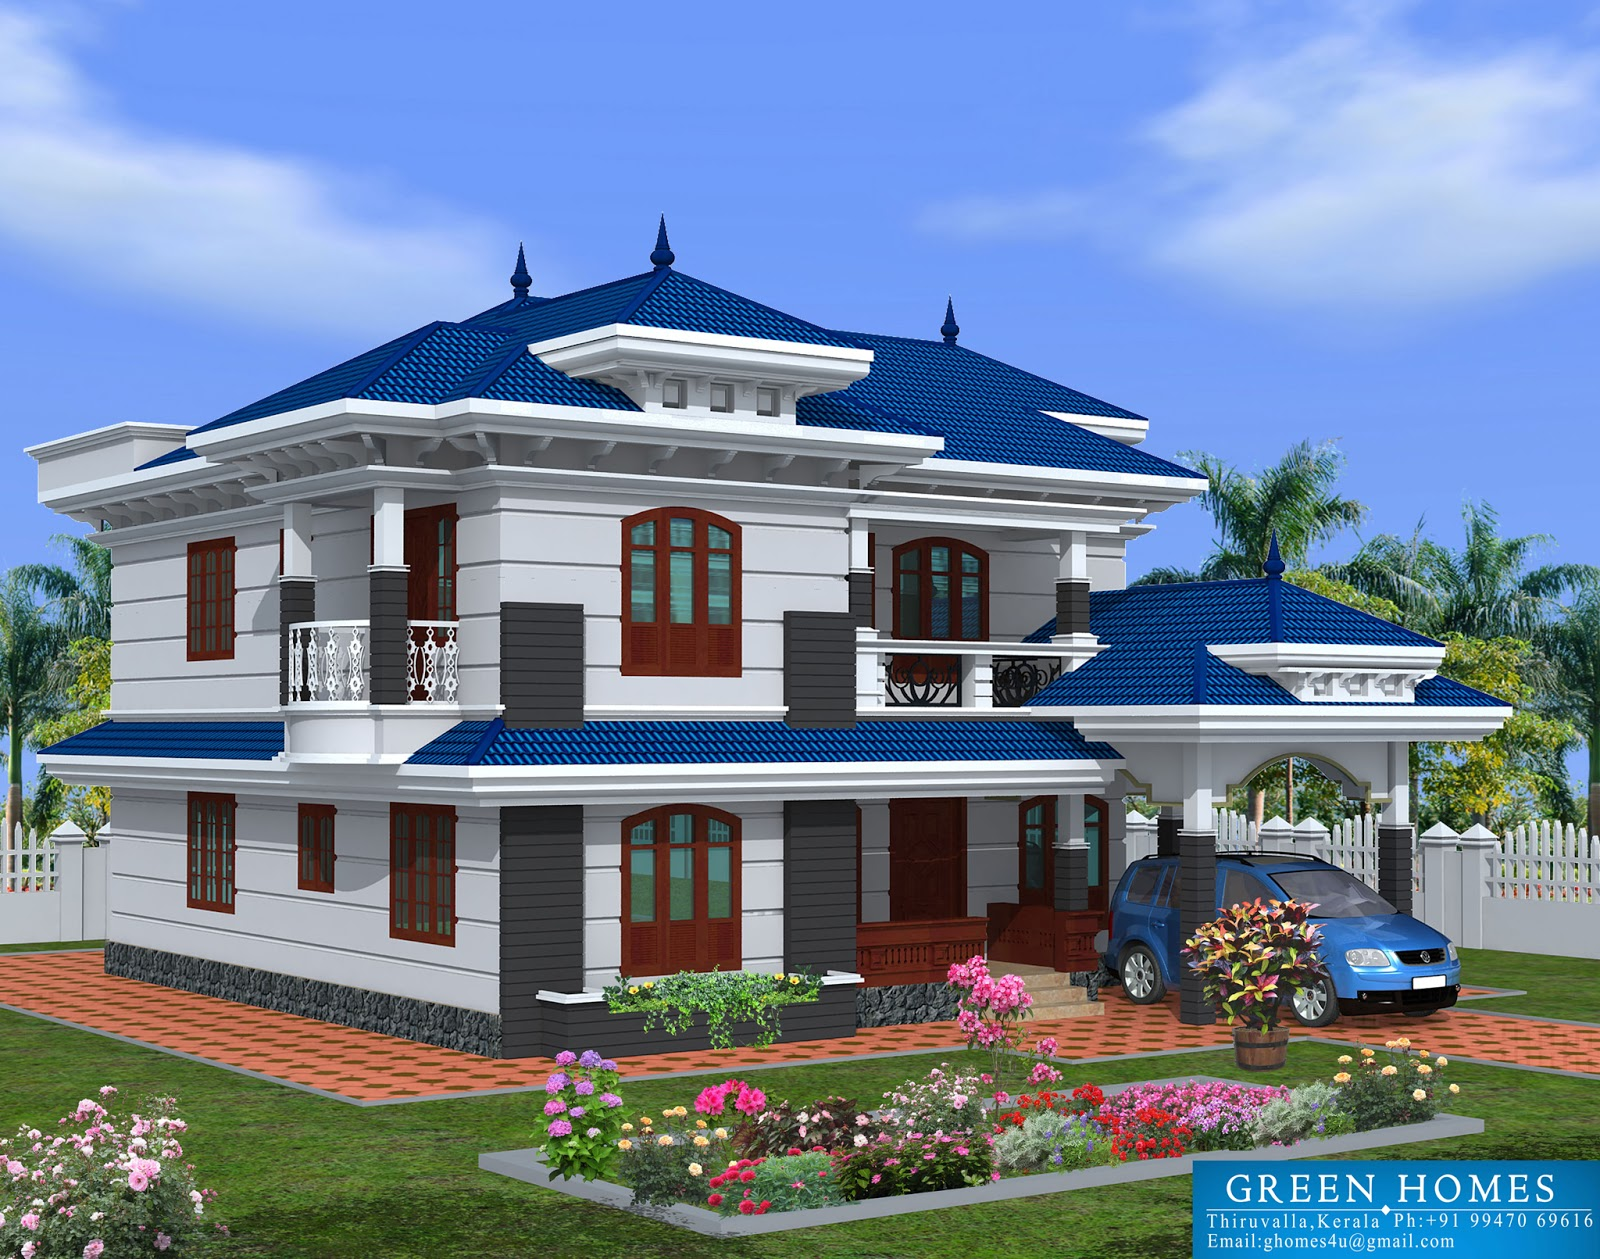 beautiful house plans interior design ideas green homes beautiful kerala home design